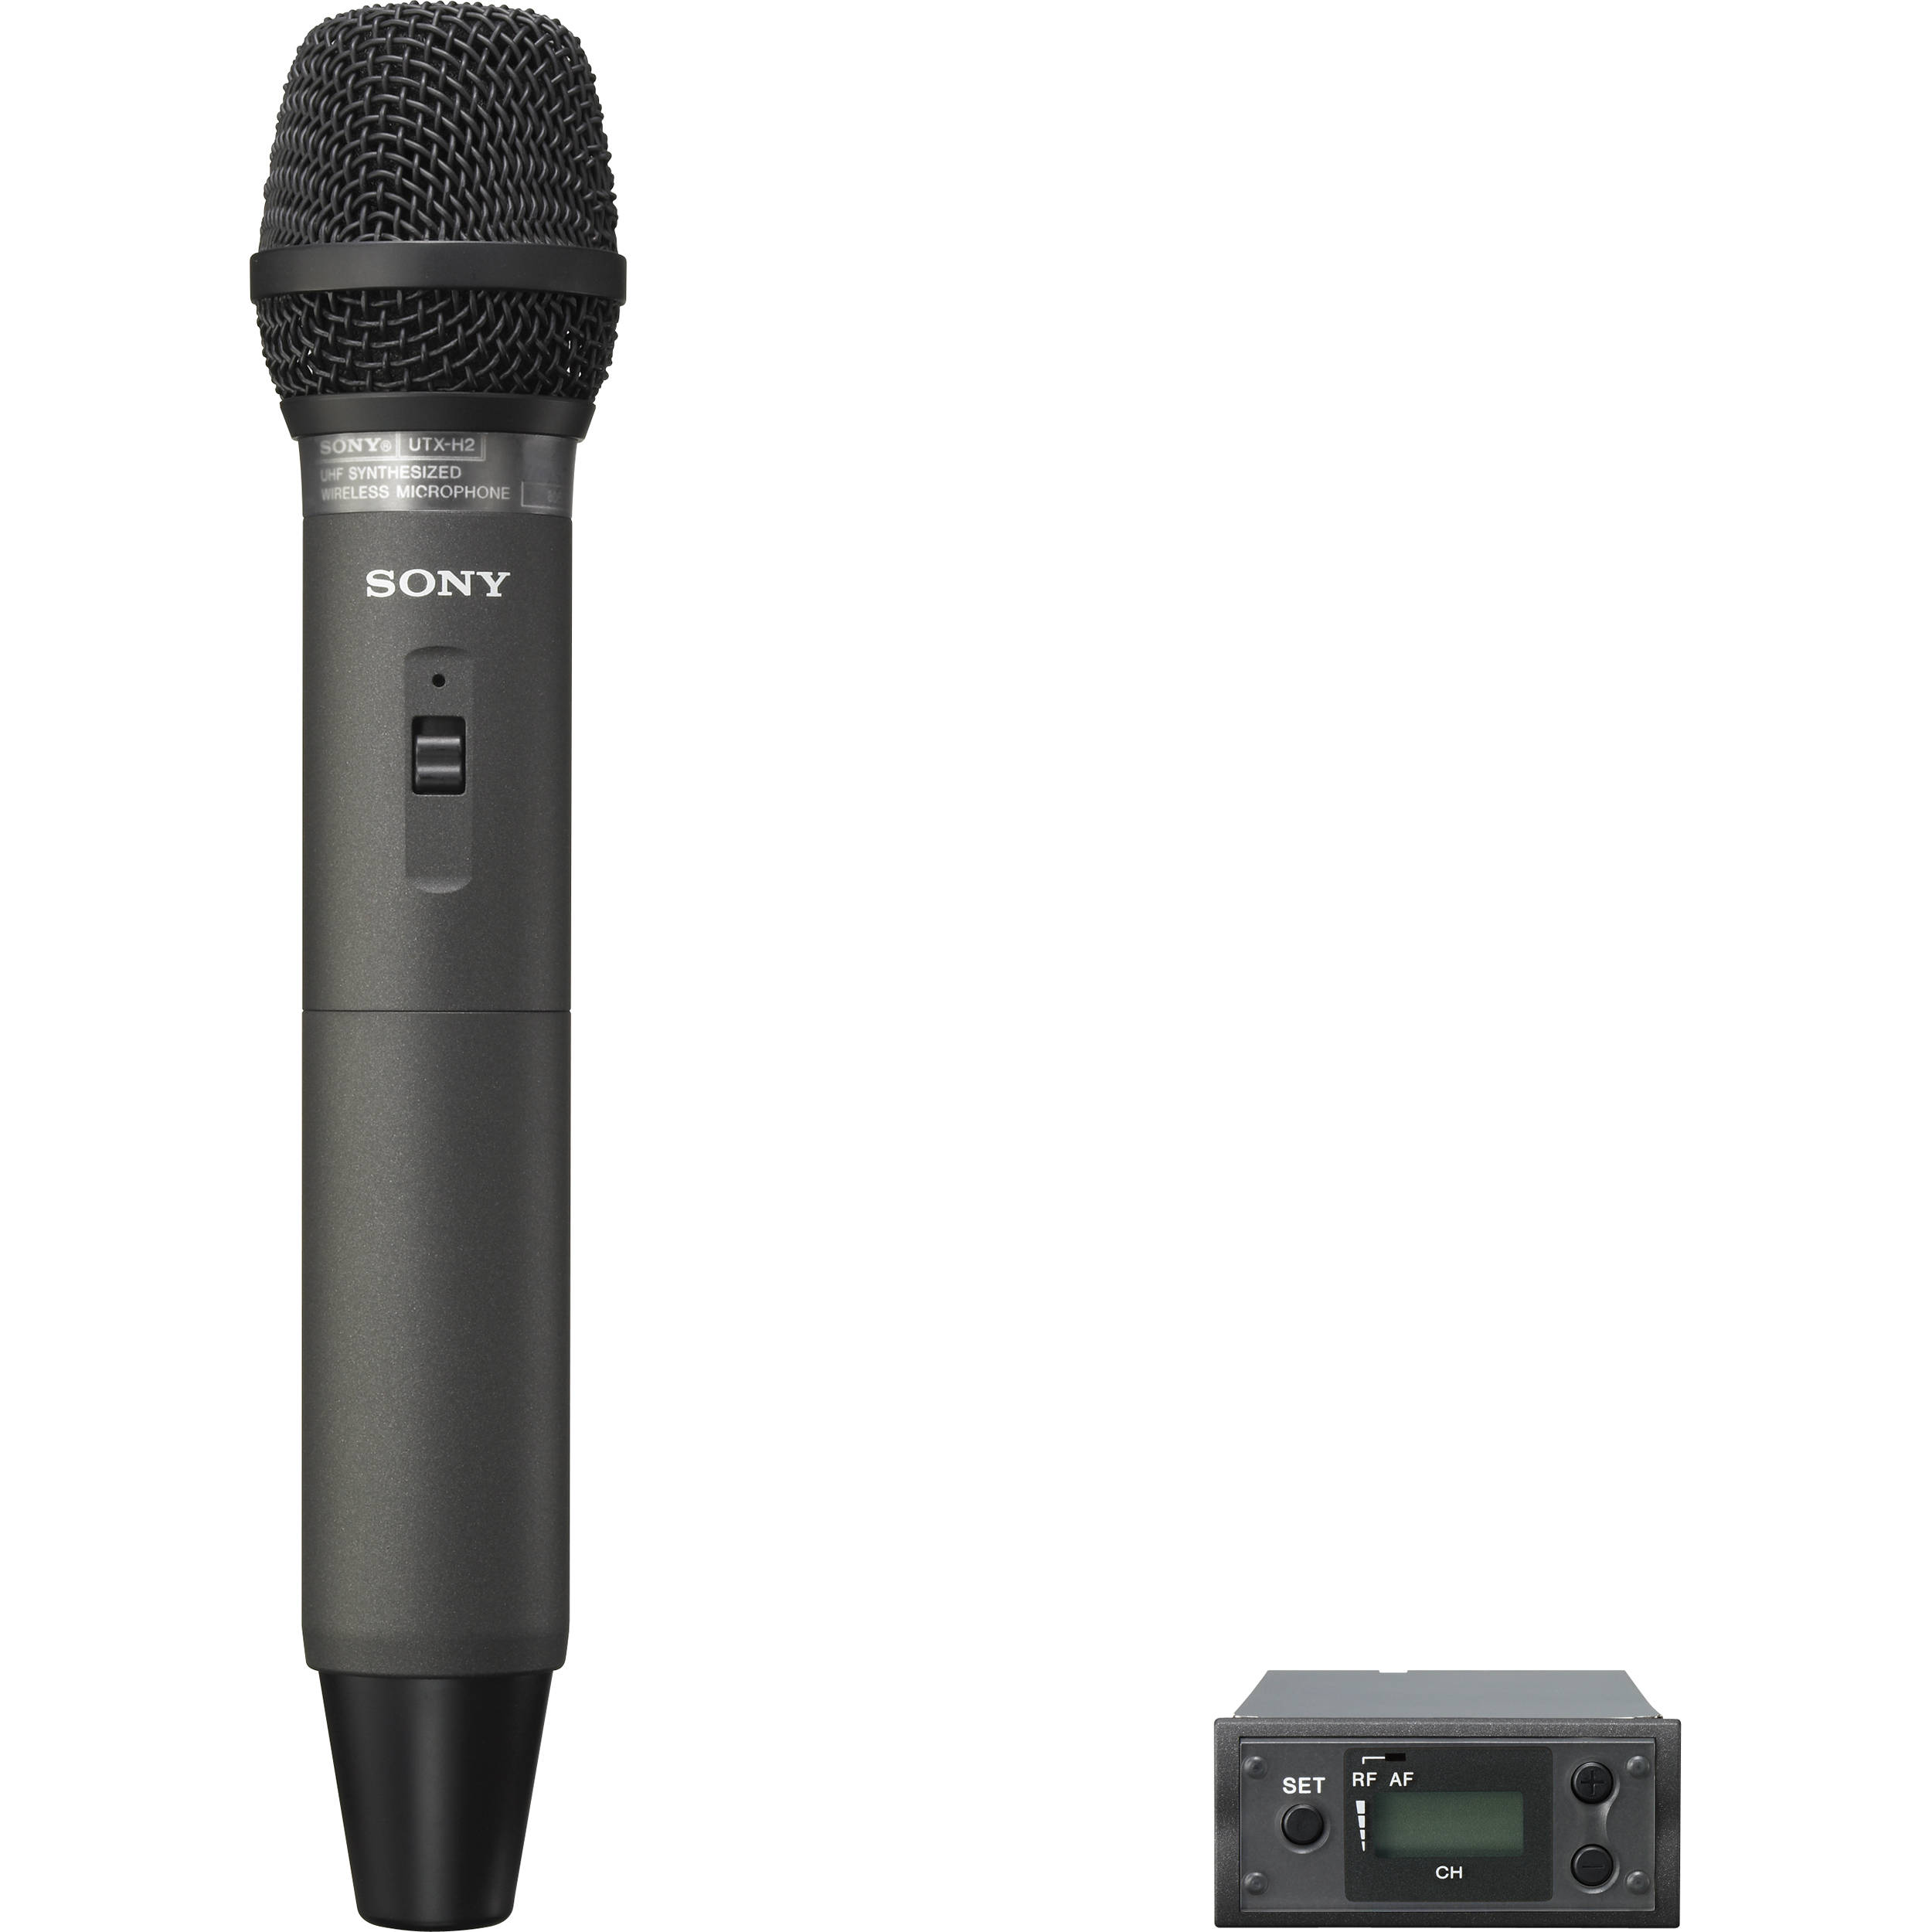 used sony uwp x8 wireless handheld microphone system uwpx8 30. Black Bedroom Furniture Sets. Home Design Ideas